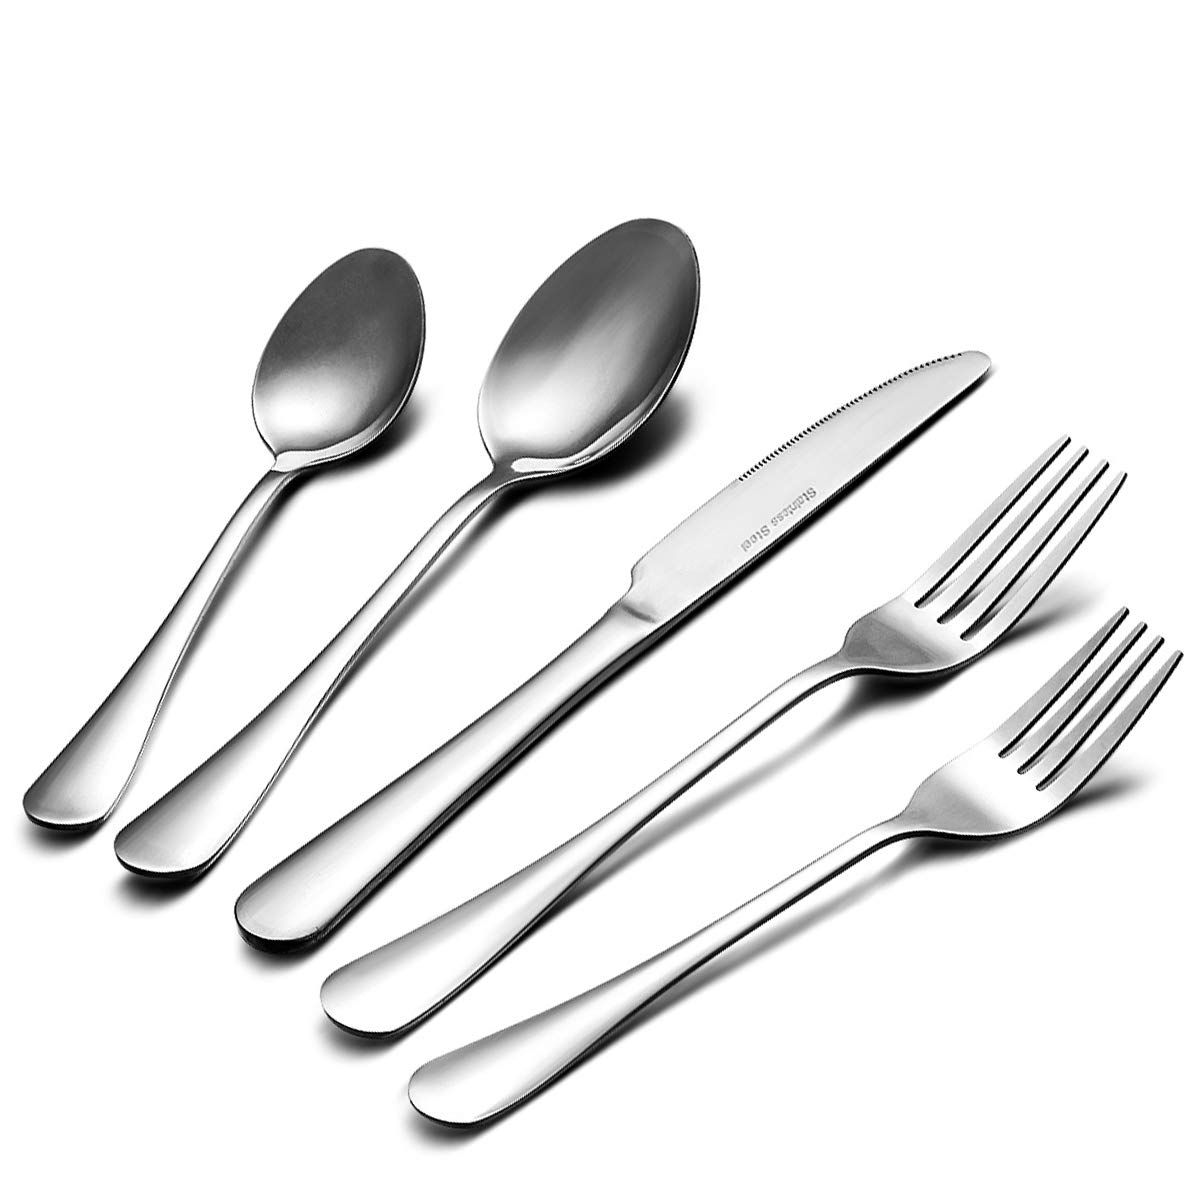 20 Piece Flatware Silverware Set, Fine Cutlery Sets Stainless Steel Mirror Polished with Knives, Forks and Spoons for Dessert & Dinner, Umite Chef Modern Eating Utensils Silverware Service for 4